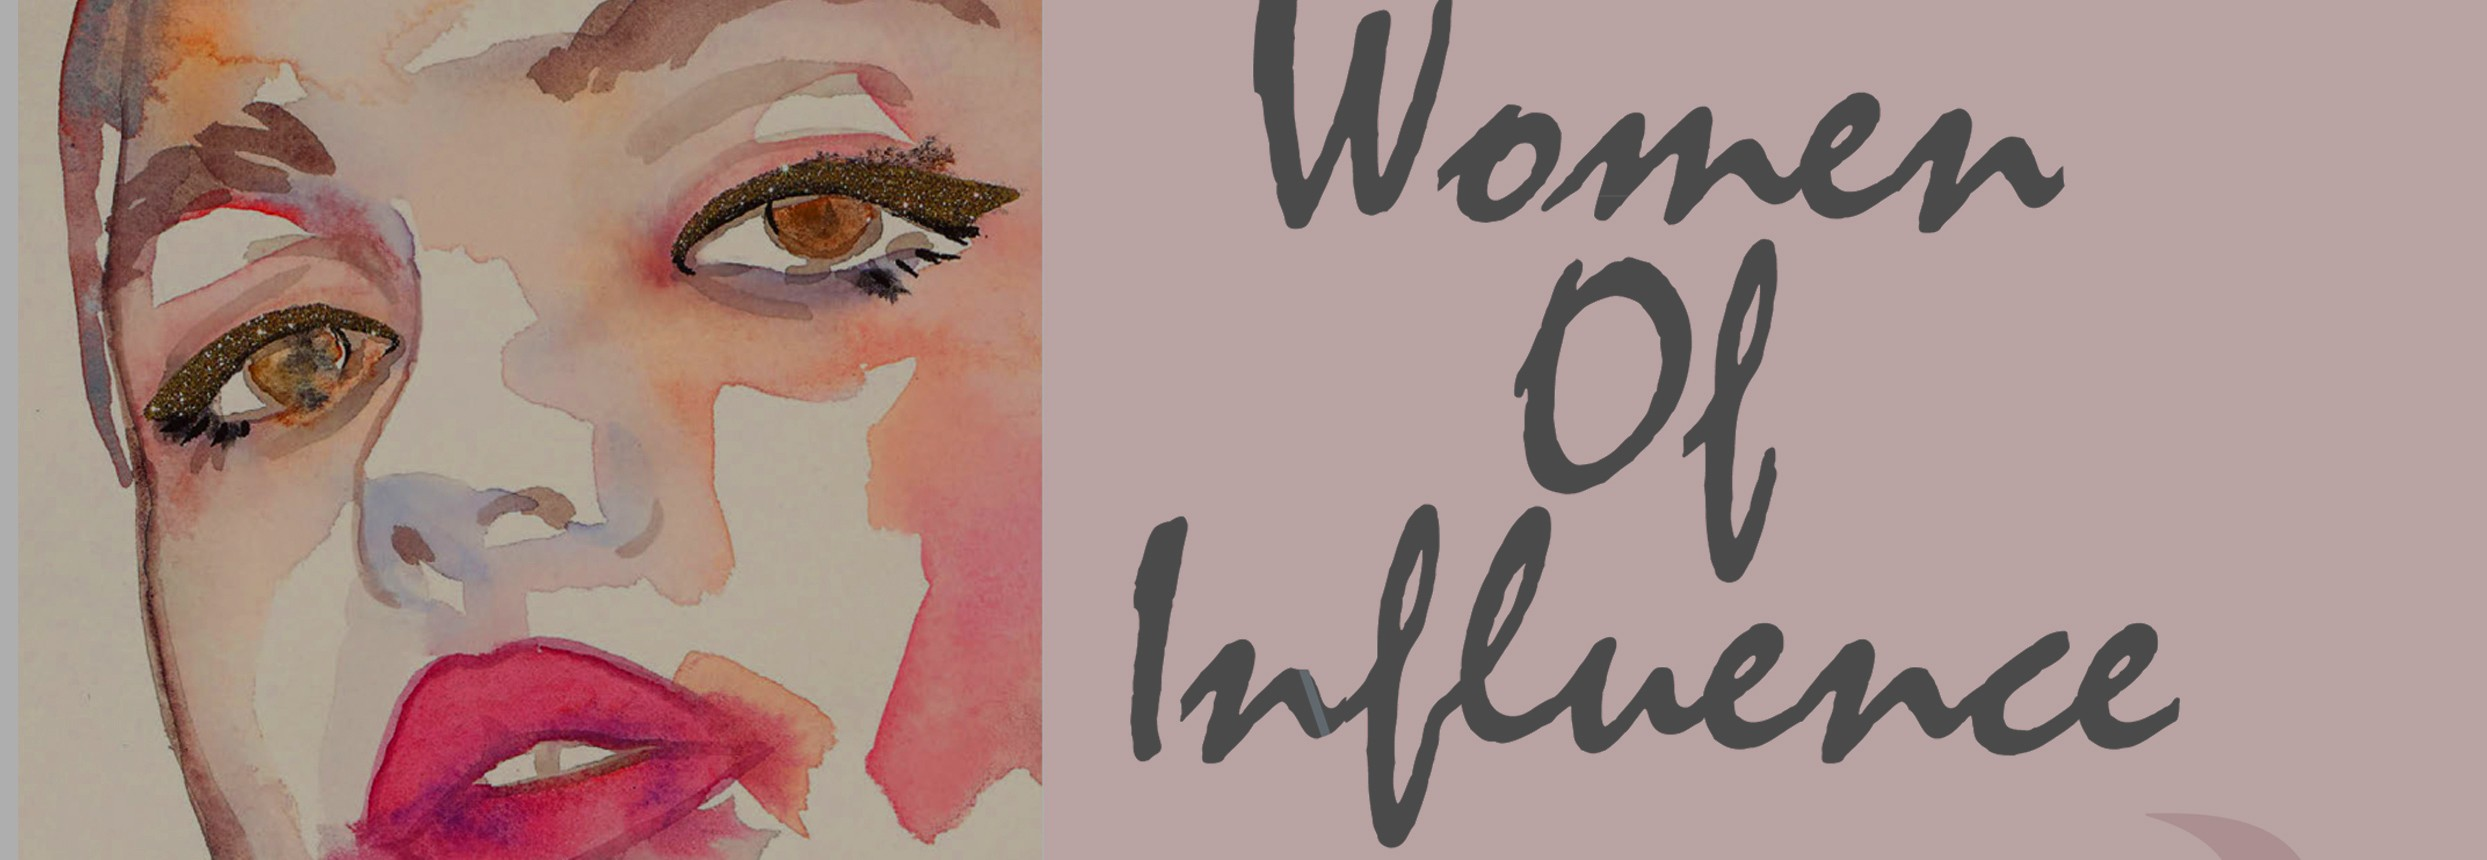 """LDM Founder Hilary Lentini featured in LA Confidential's """"Women of Influence"""""""